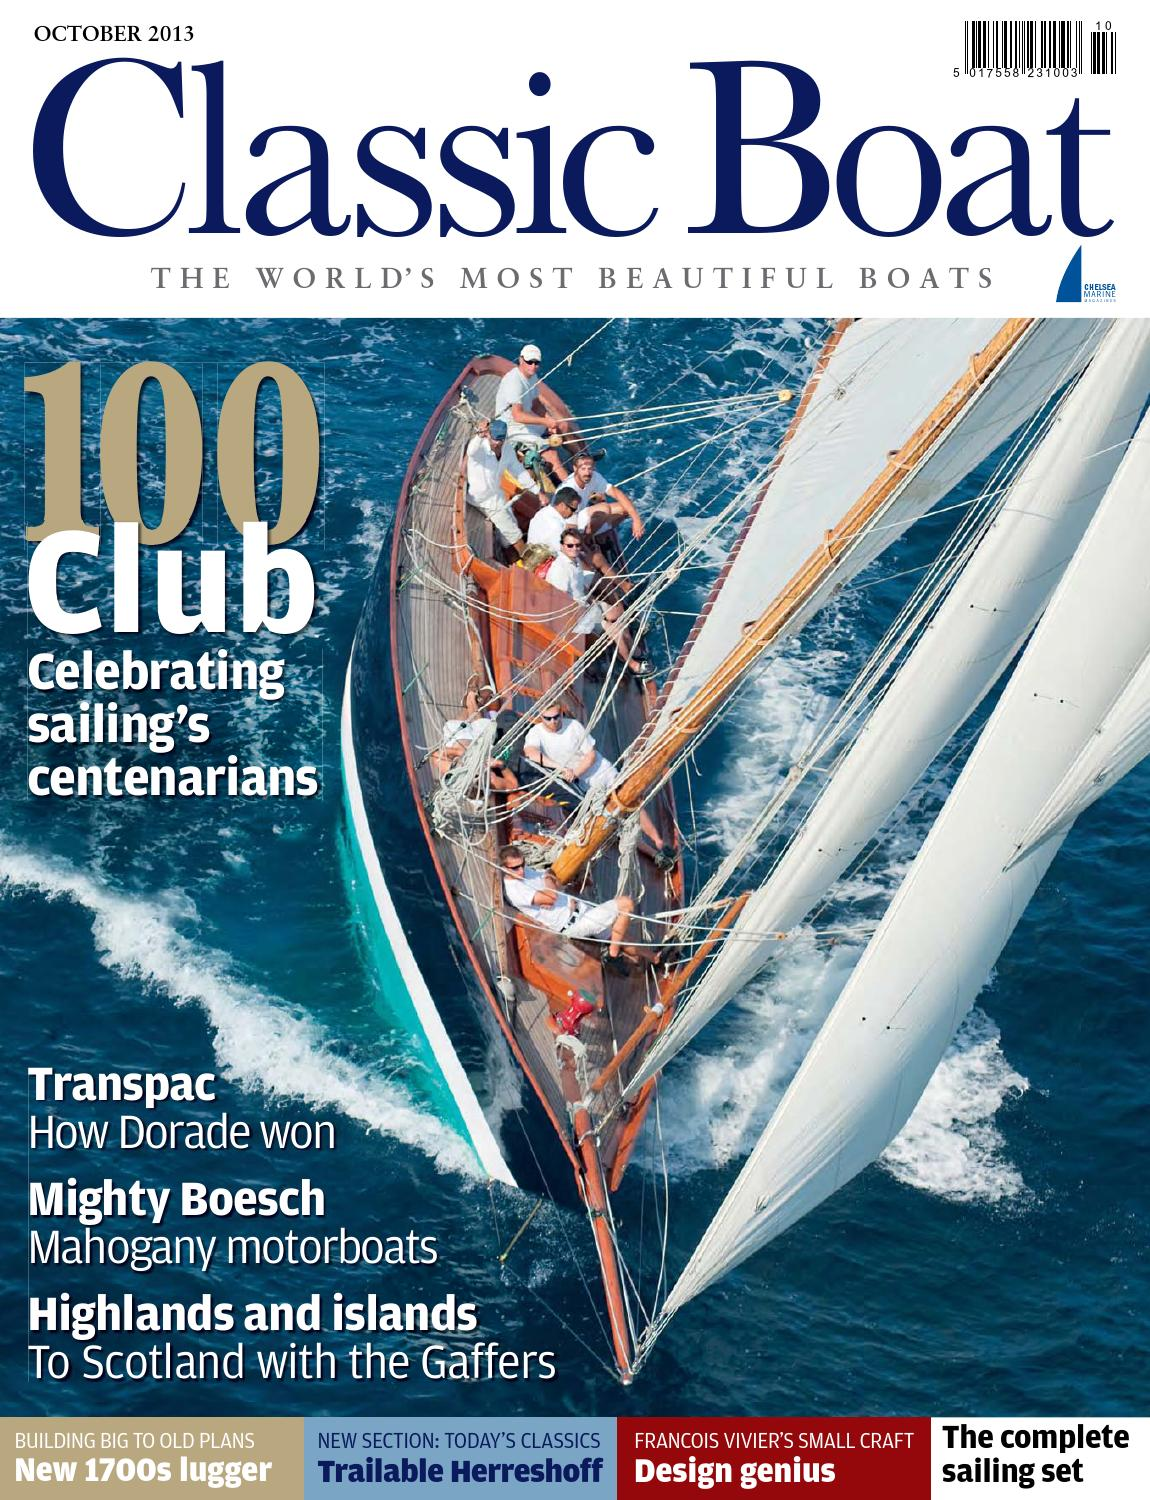 classic boat 2013 by the chelsea magazine company issuu